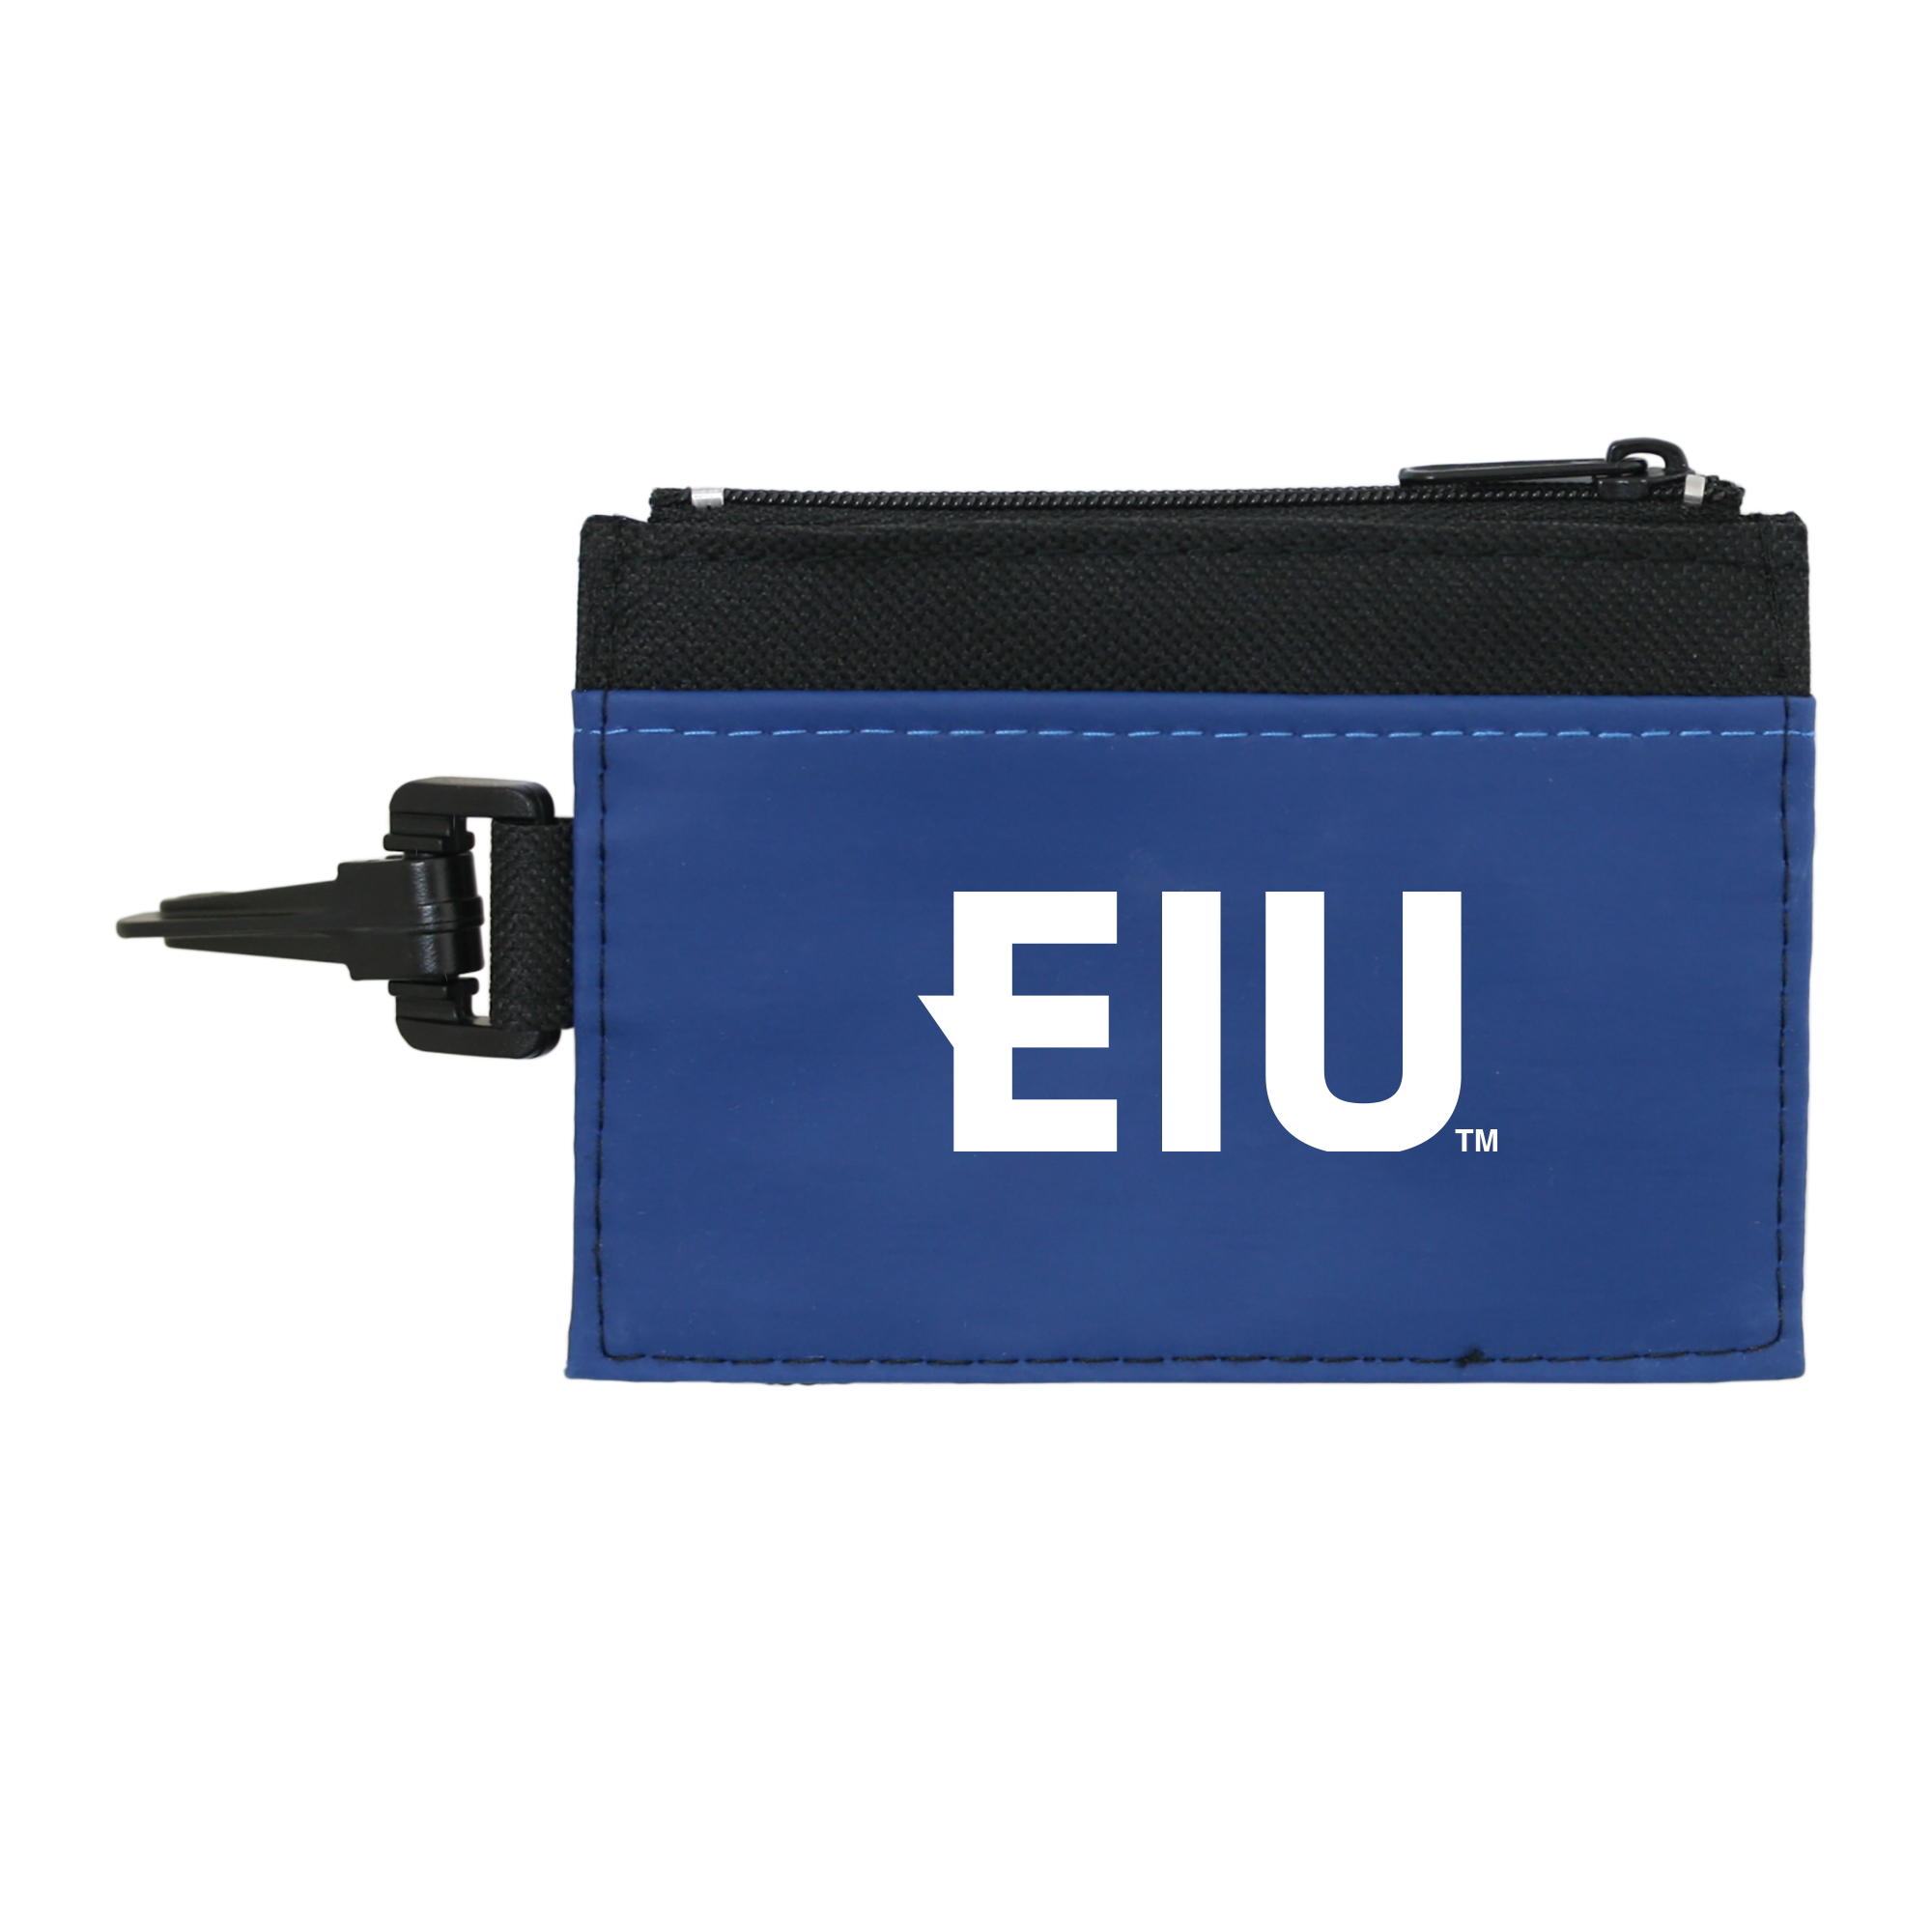 Image For ID HOLDER EIU NY